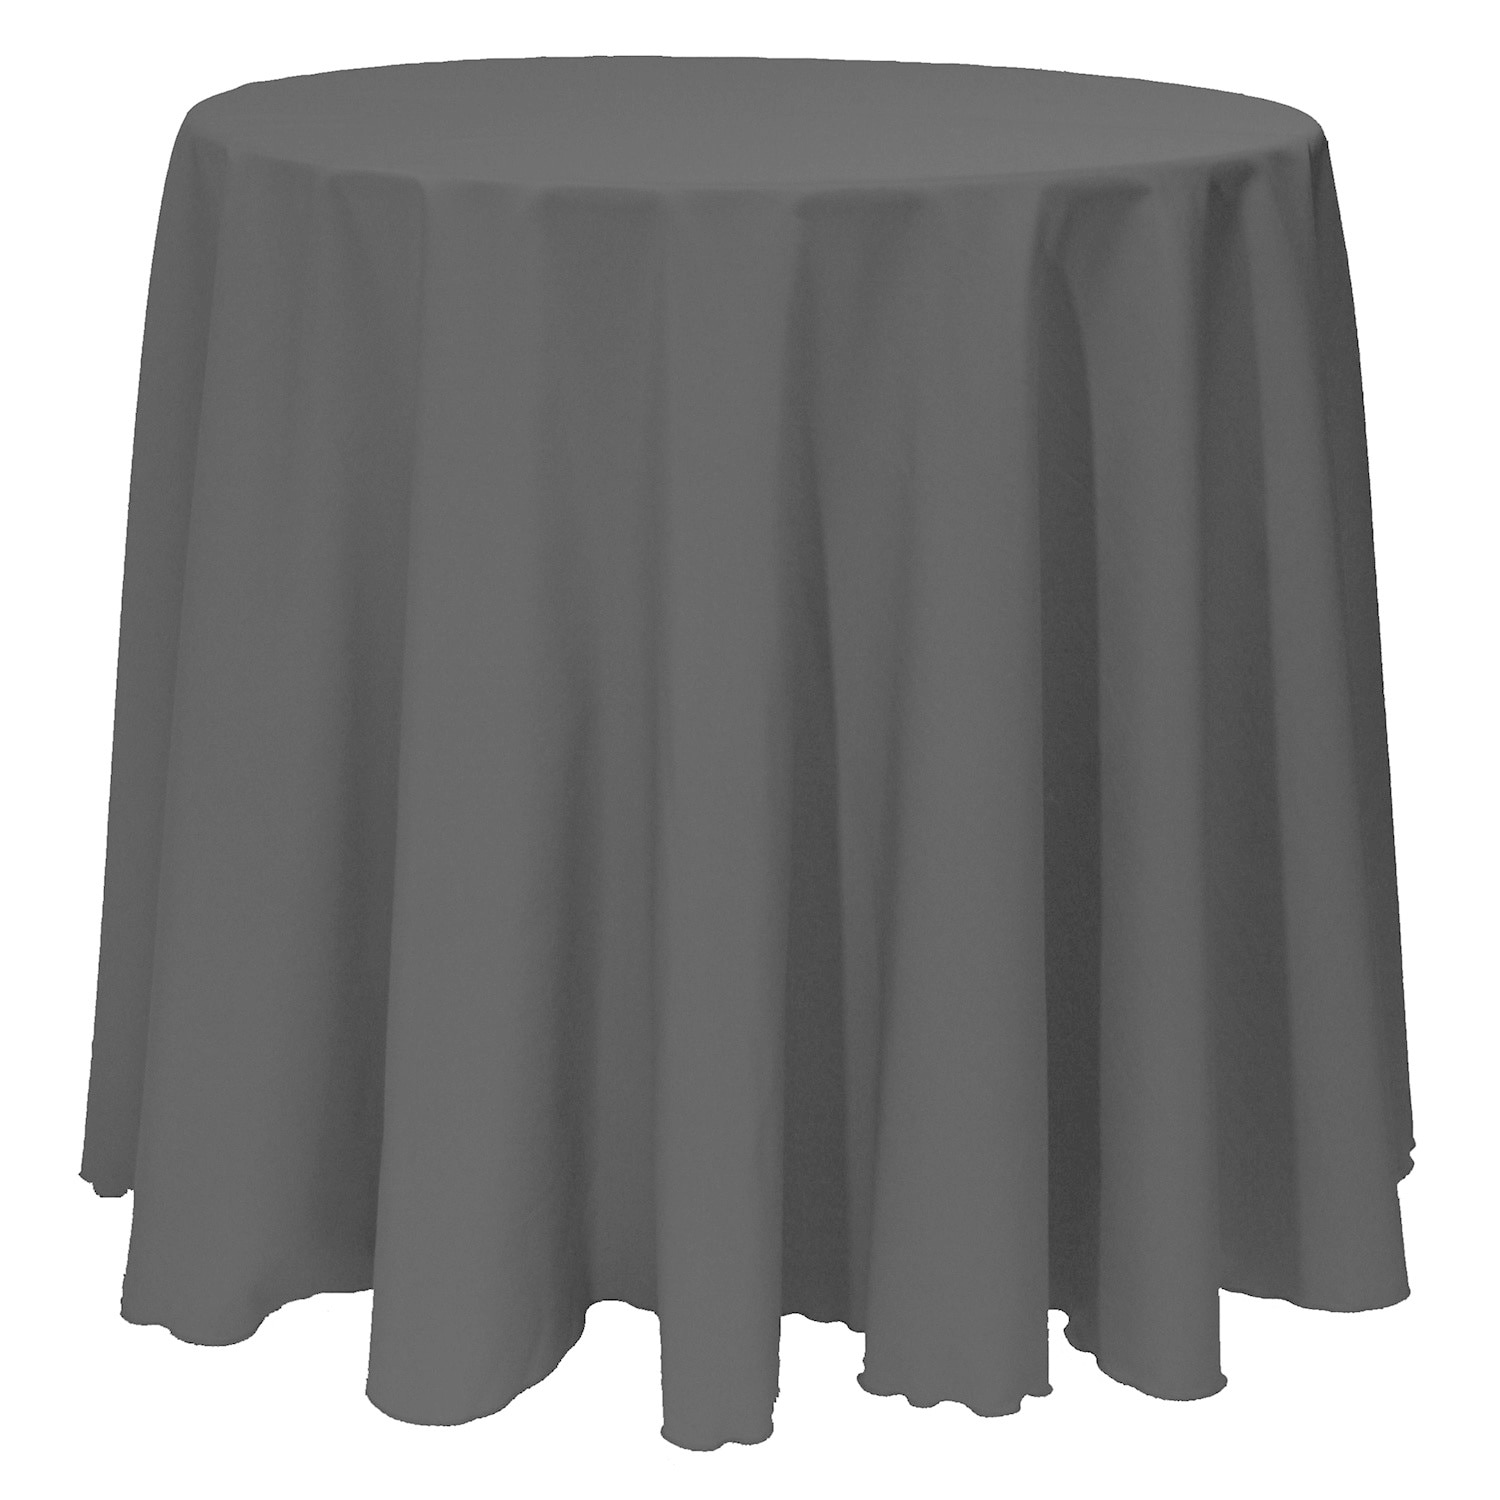 Buy Round Tablecloths Online At Overstock.com | Our Best Table Linens U0026  Decor Deals